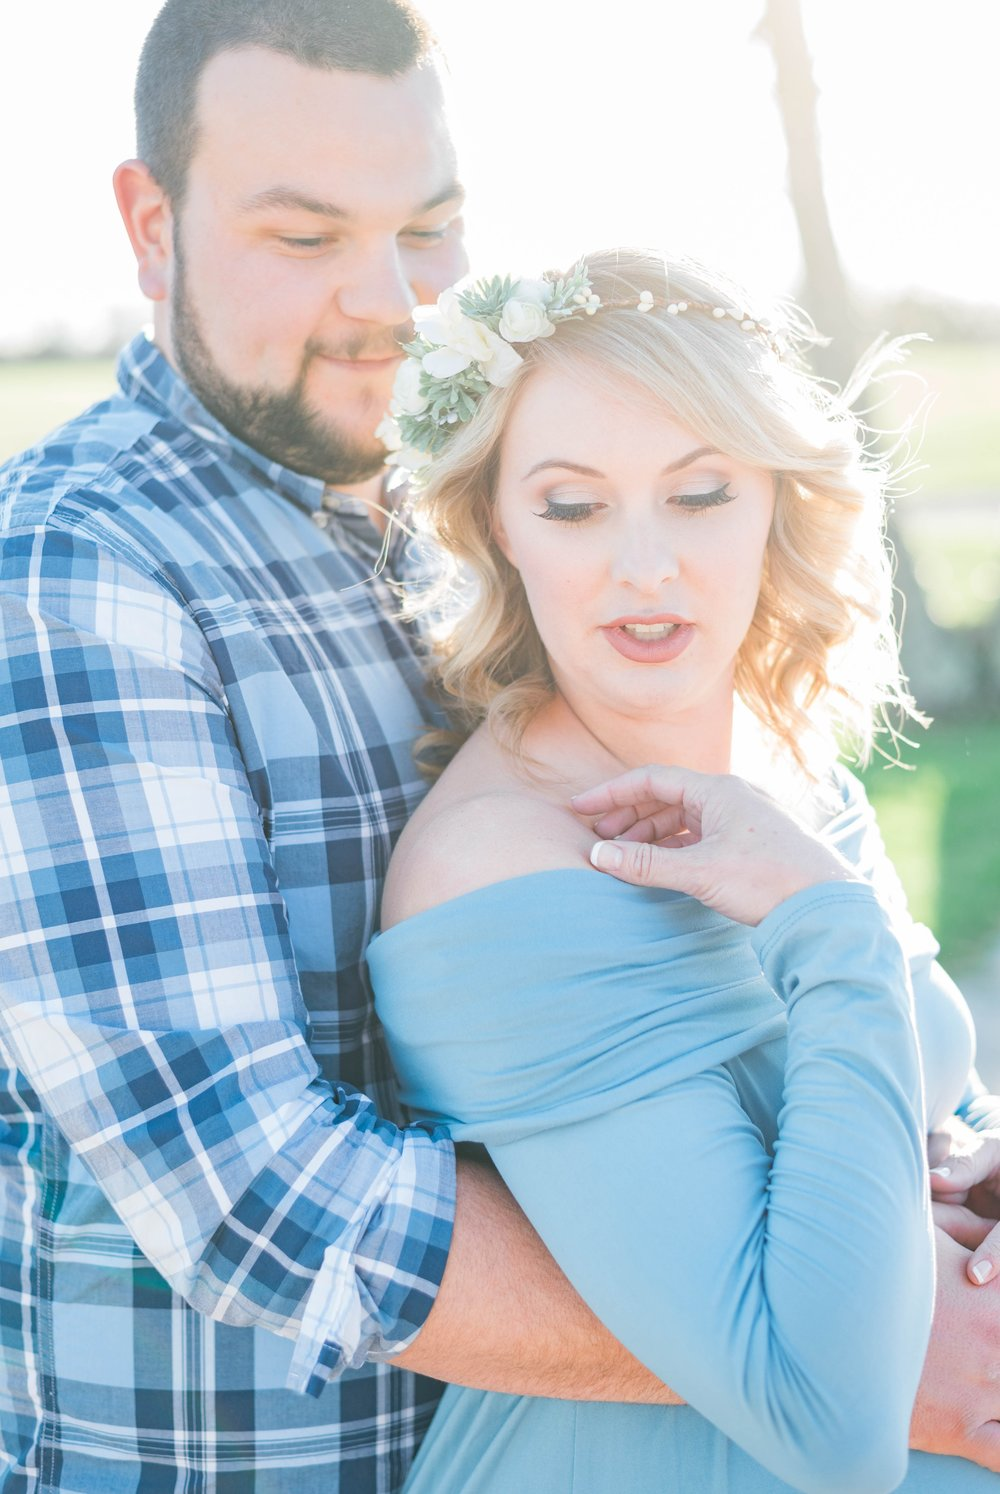 SorellaFarms_Jessica+Dylan_MaternitySession_Virginiaweddingphotographer 13.jpg